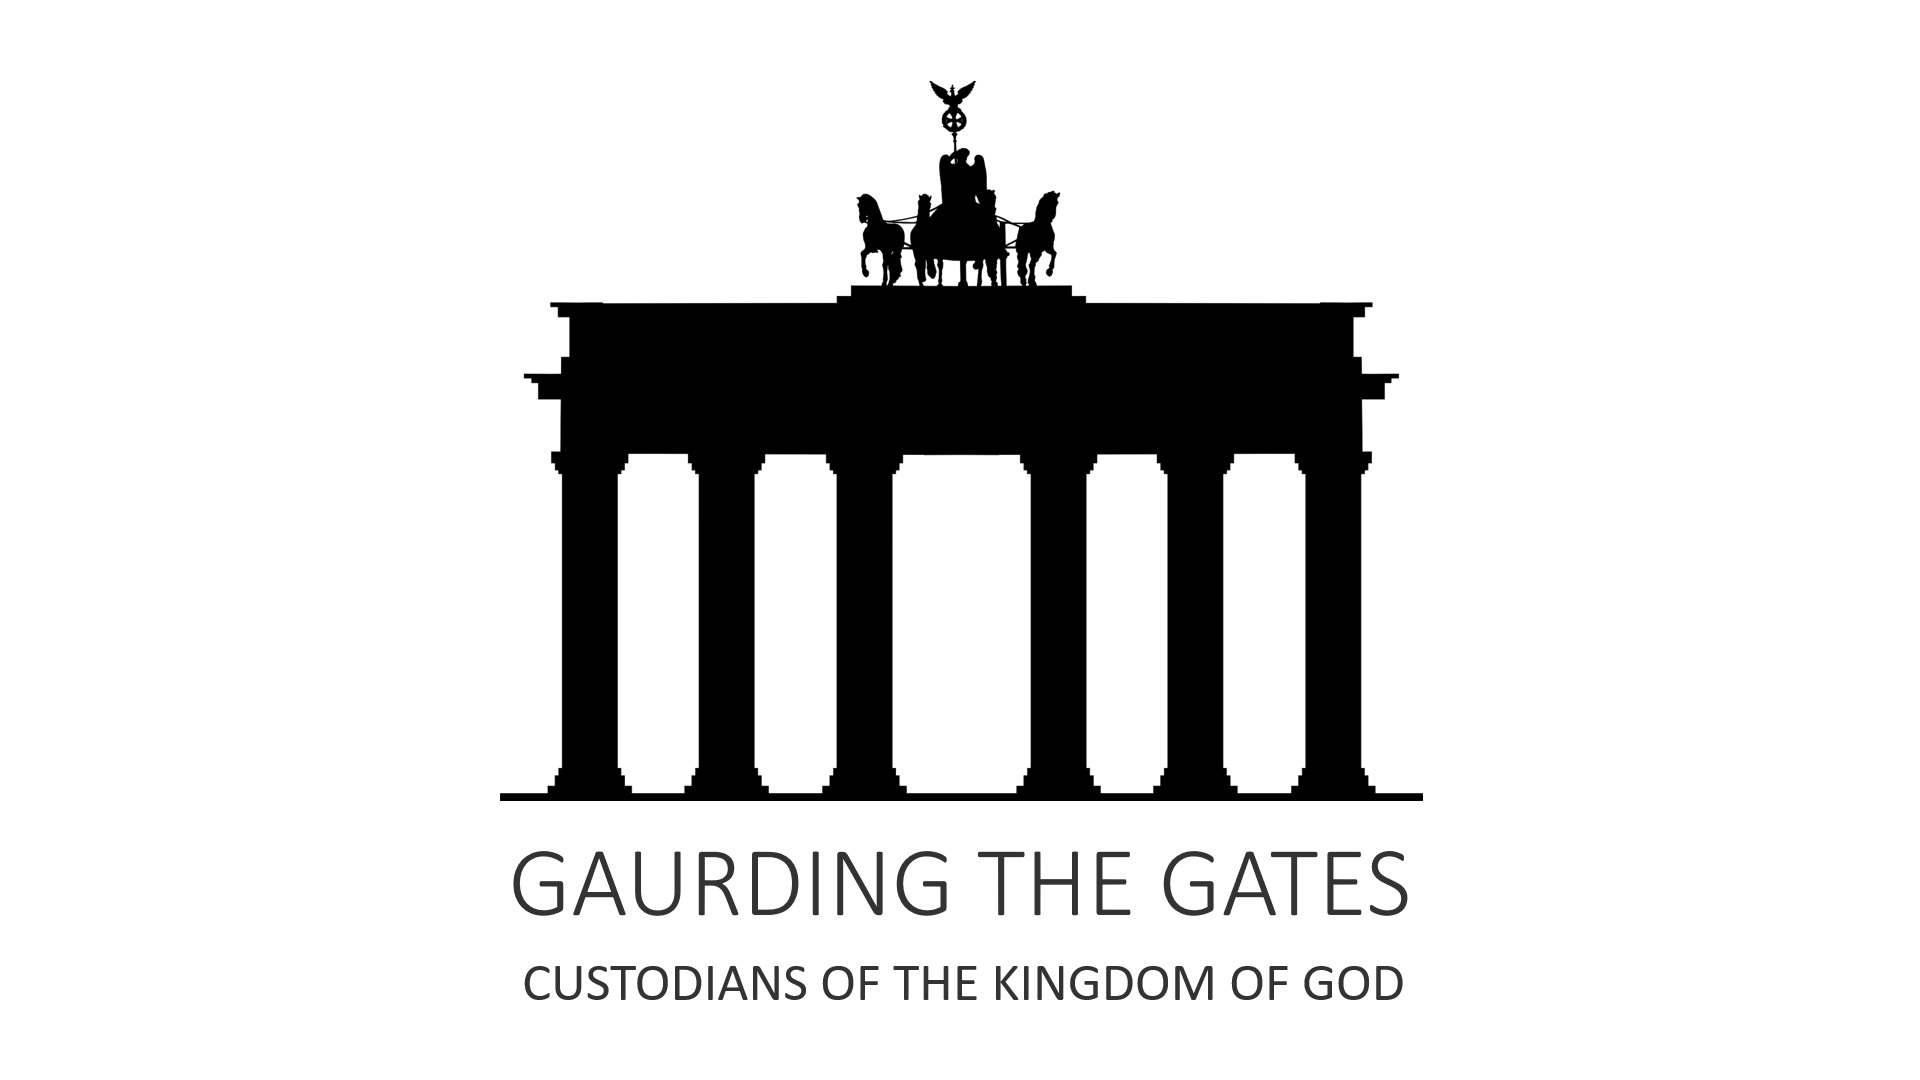 Guarding the Gates